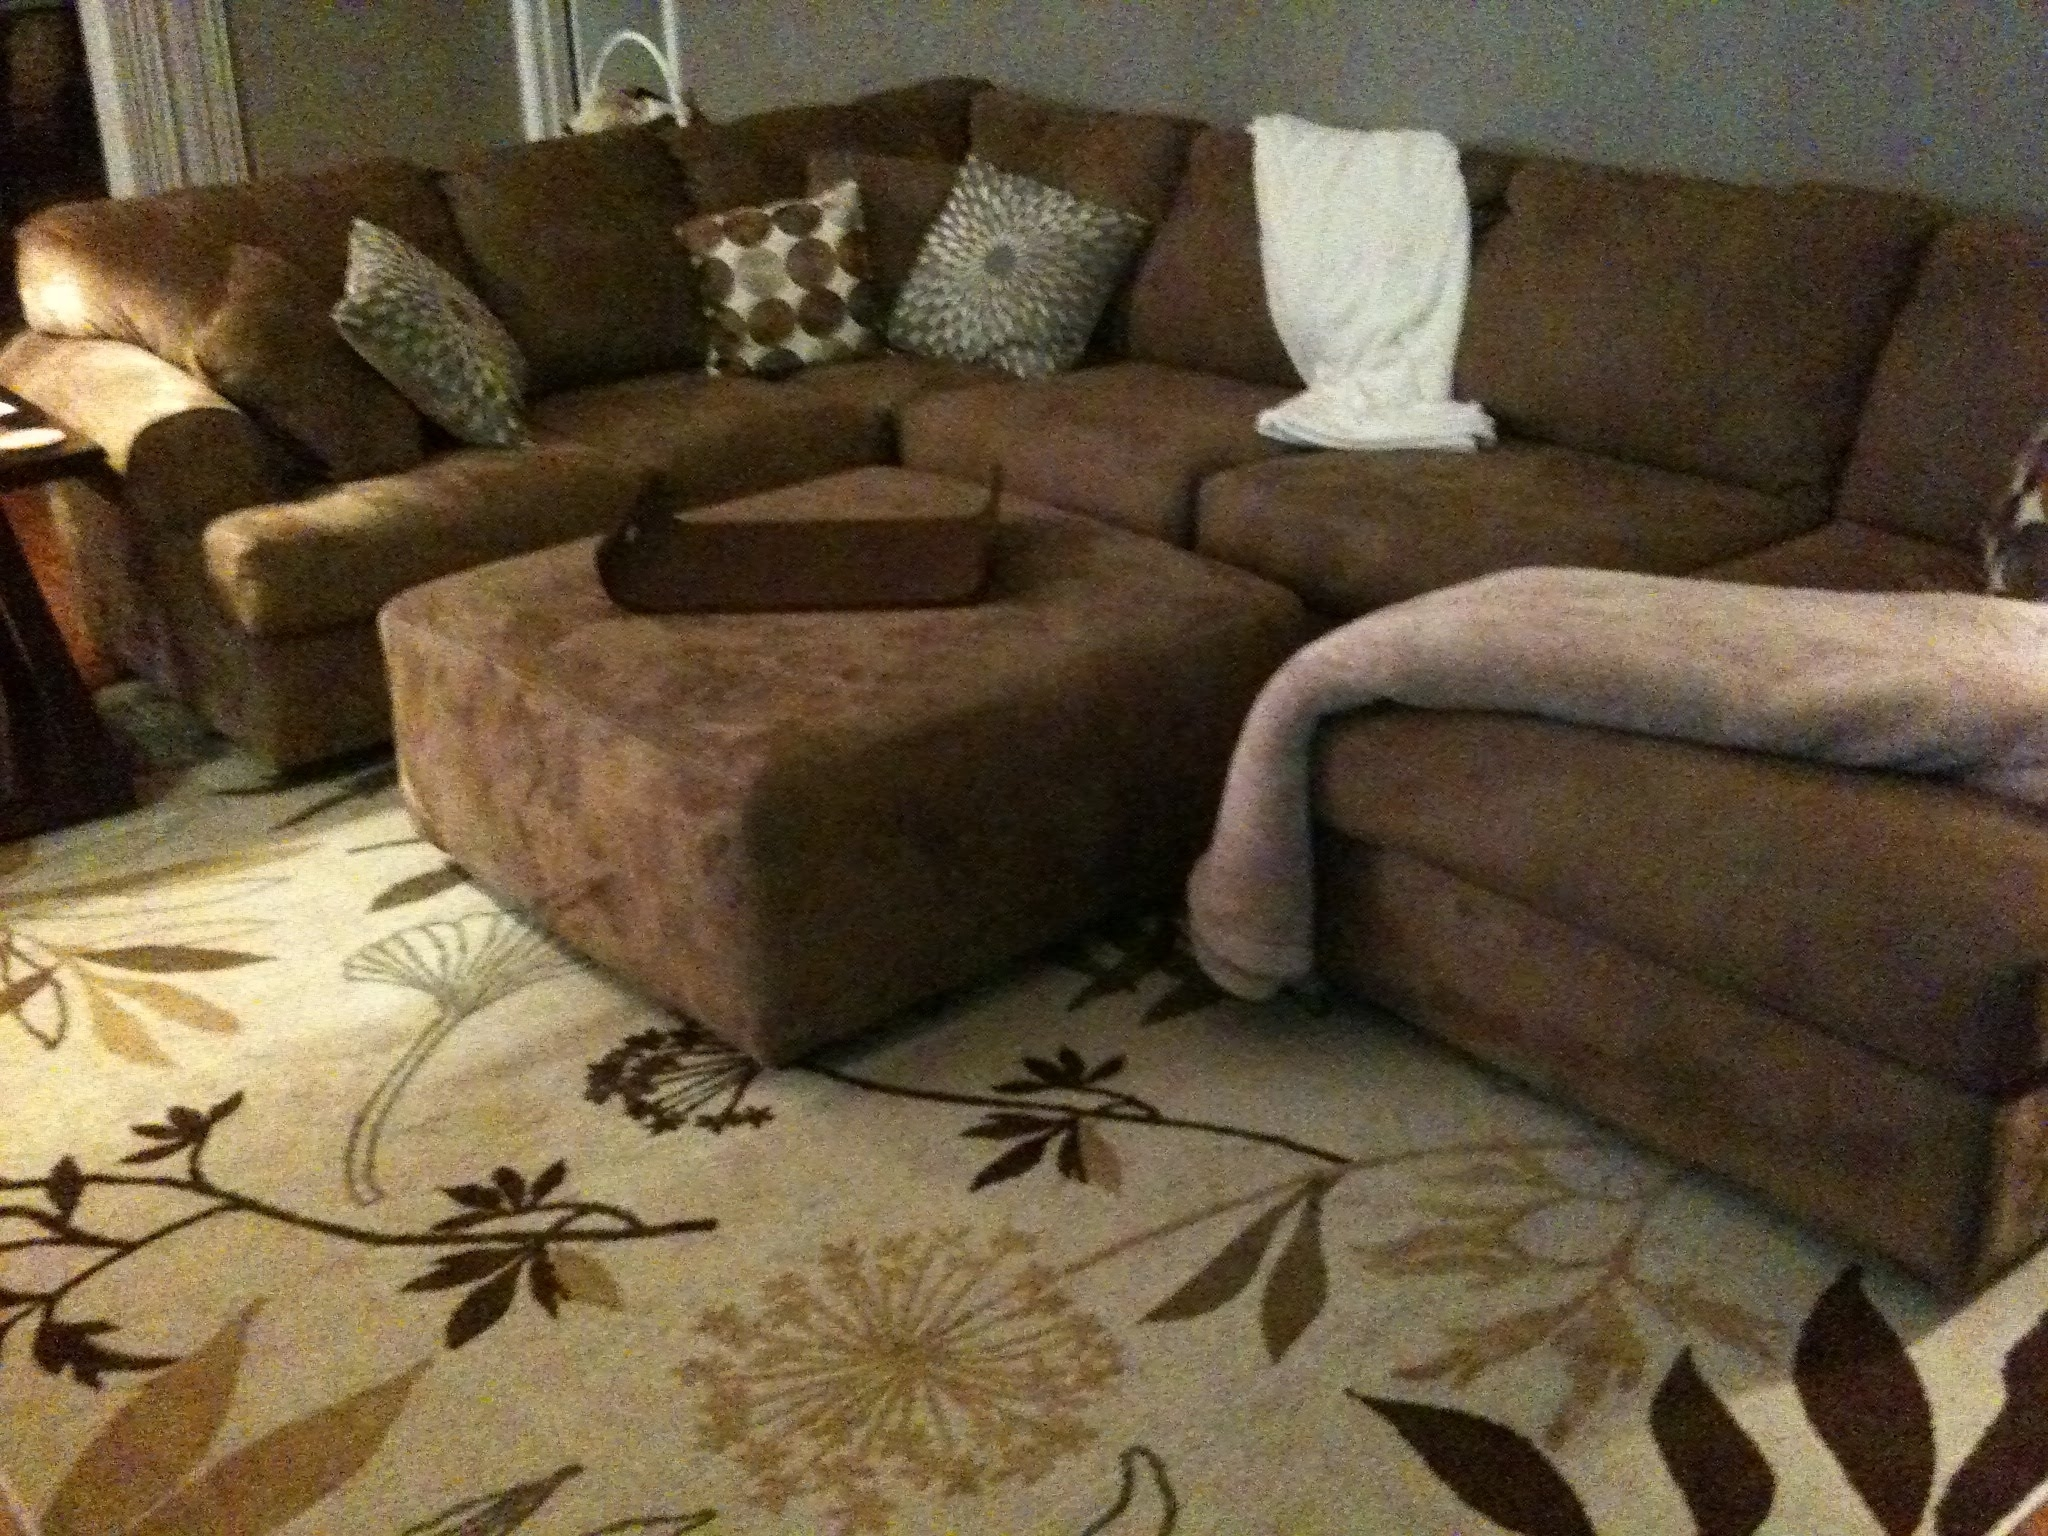 Fresh Sectional Sofas Big Lots (34 Photos) (View 12 of 20)